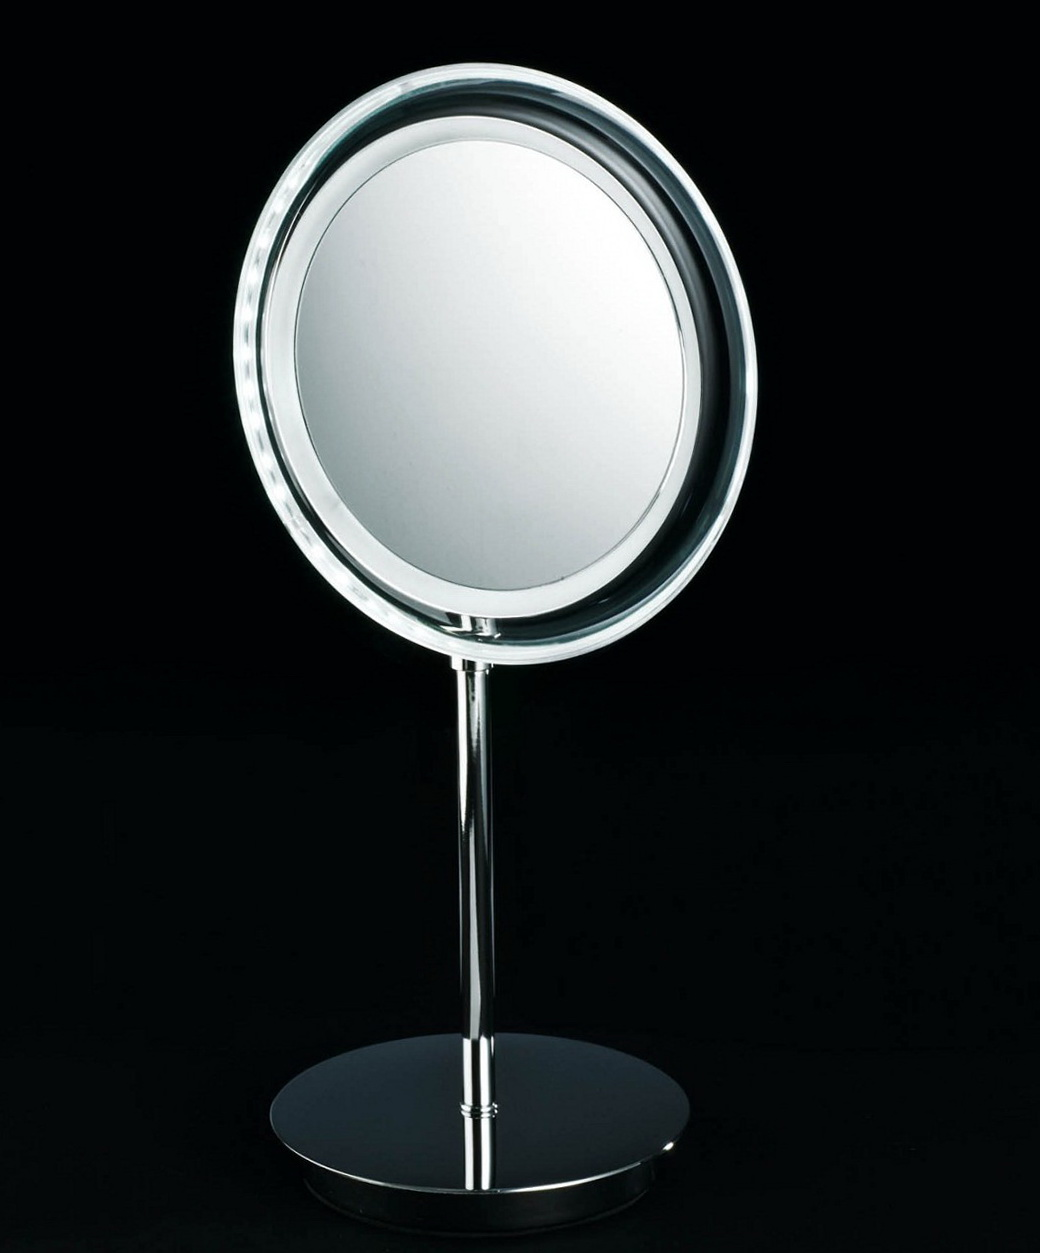 Lighted Makeup Mirror Walmart Home Design Ideas